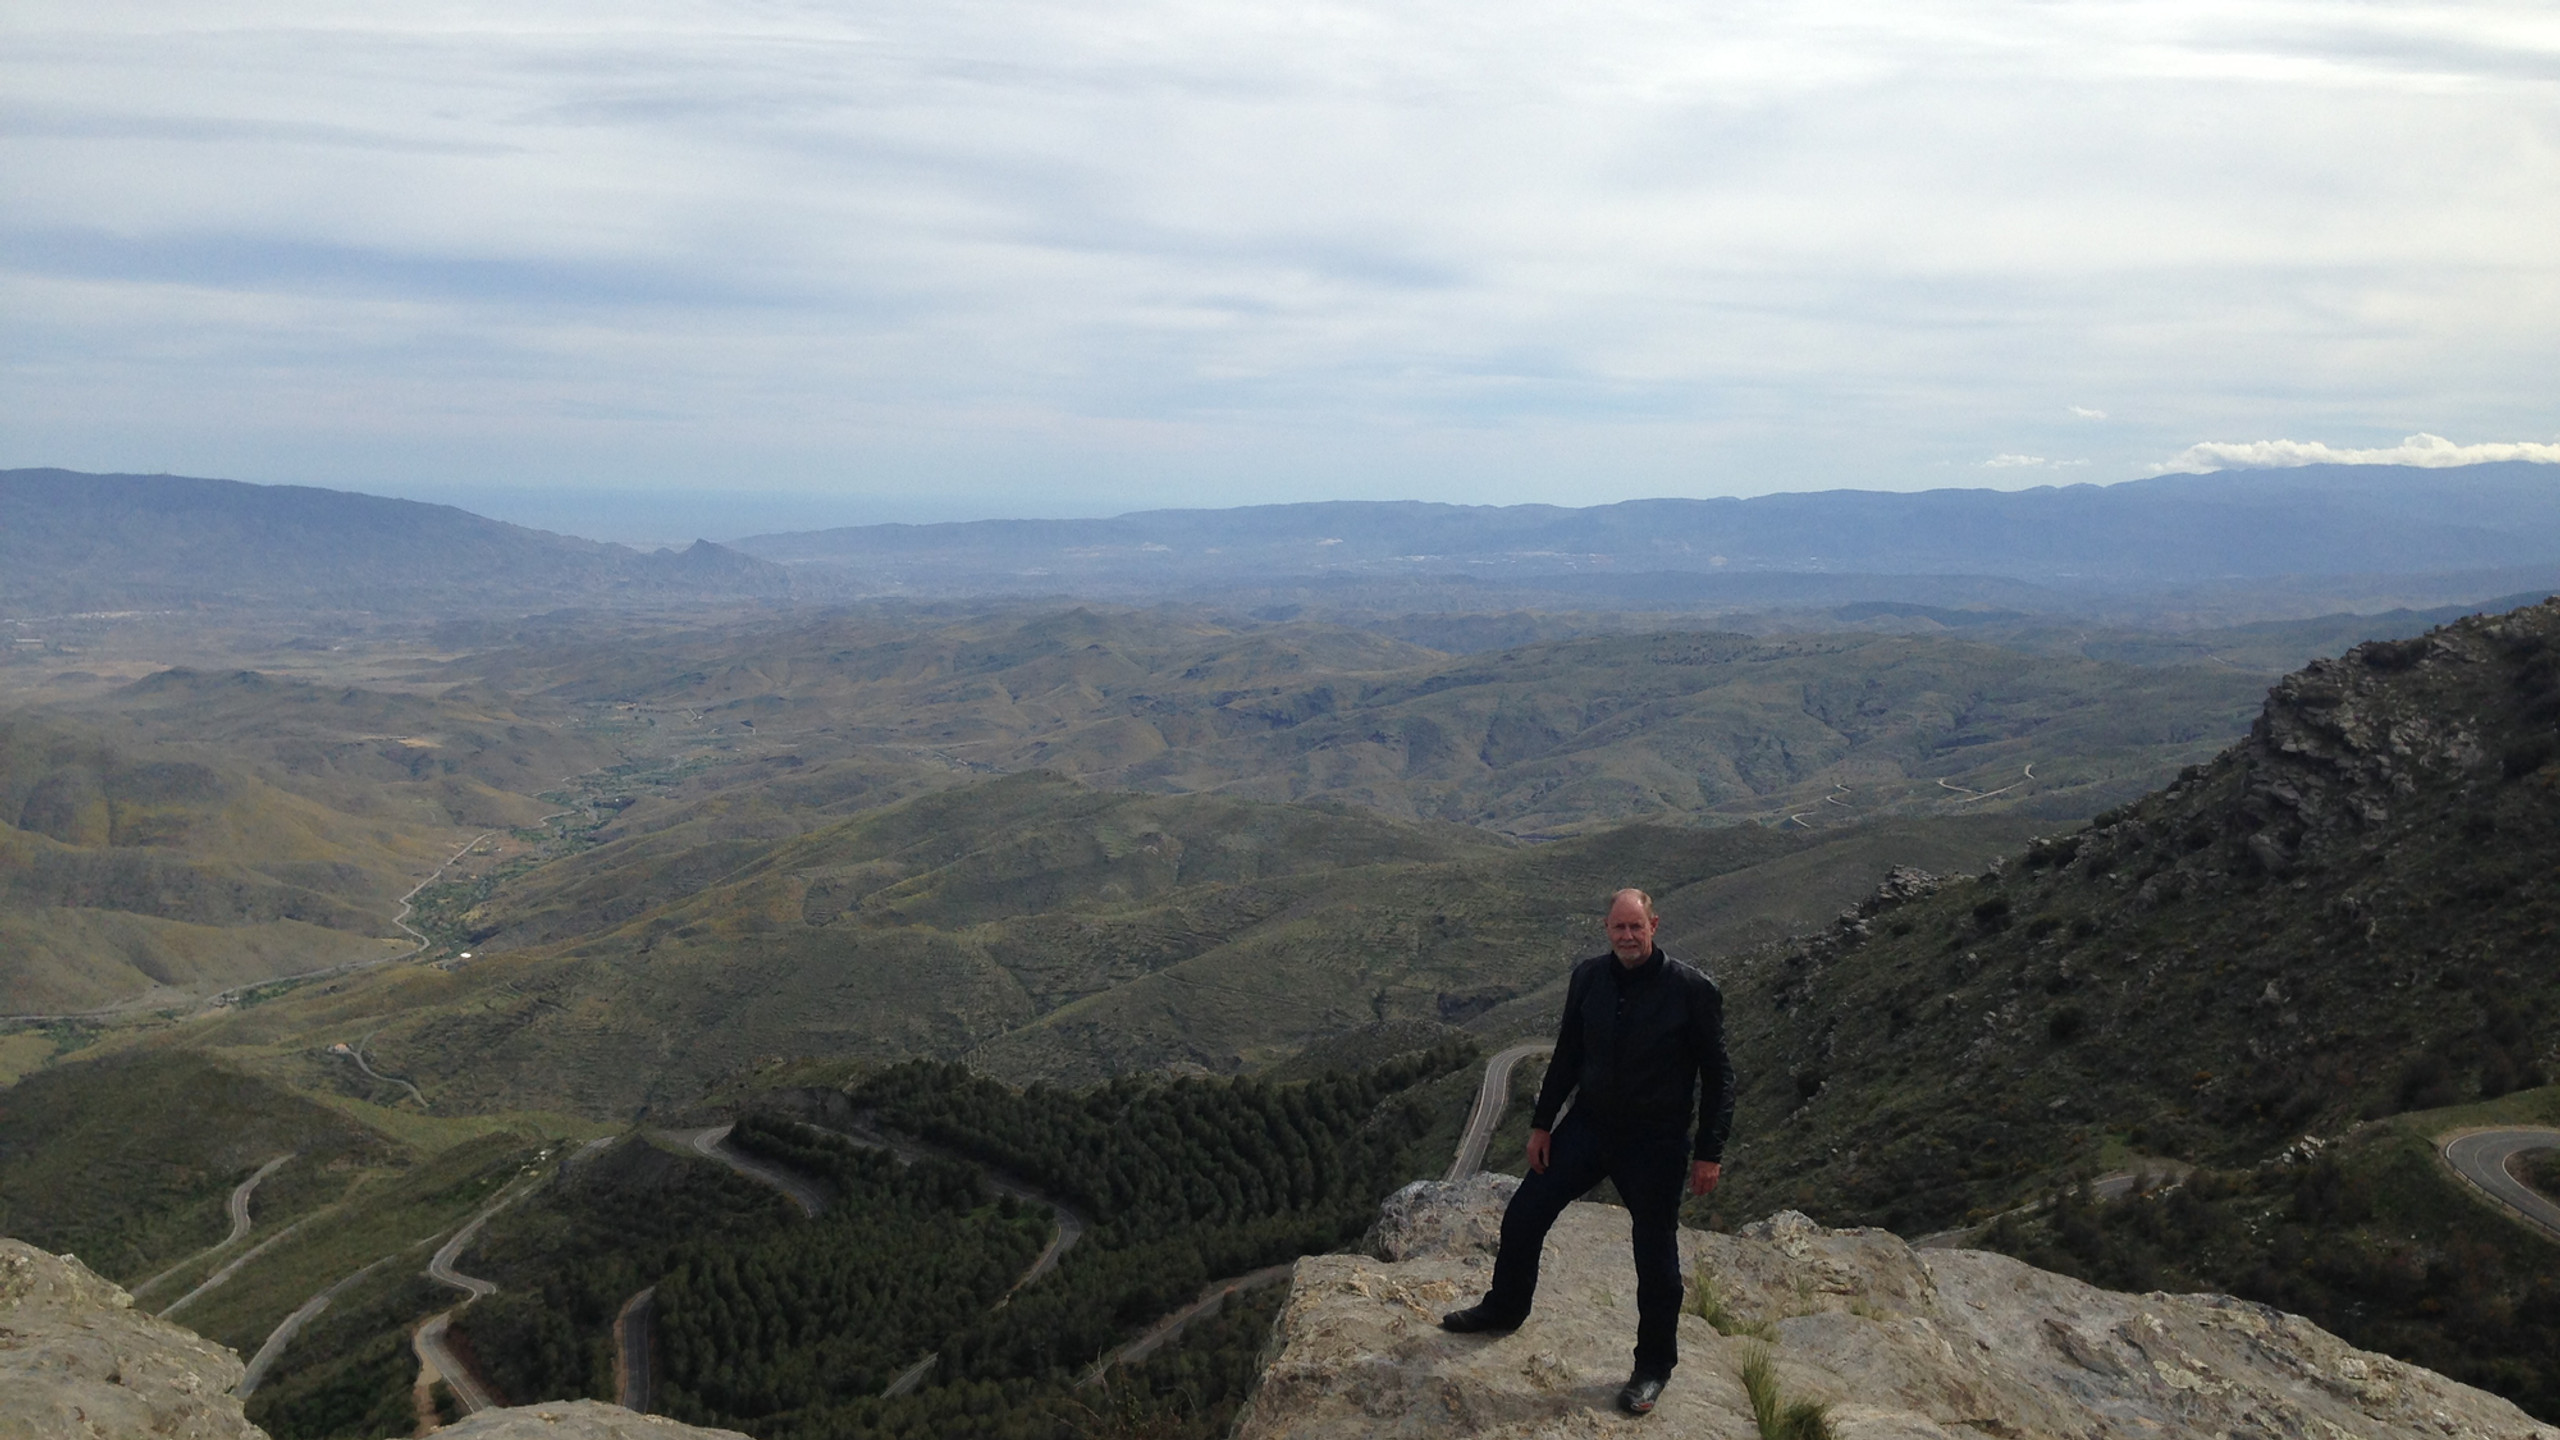 Graham viewing one of the many stunning landscapes across Andalucia